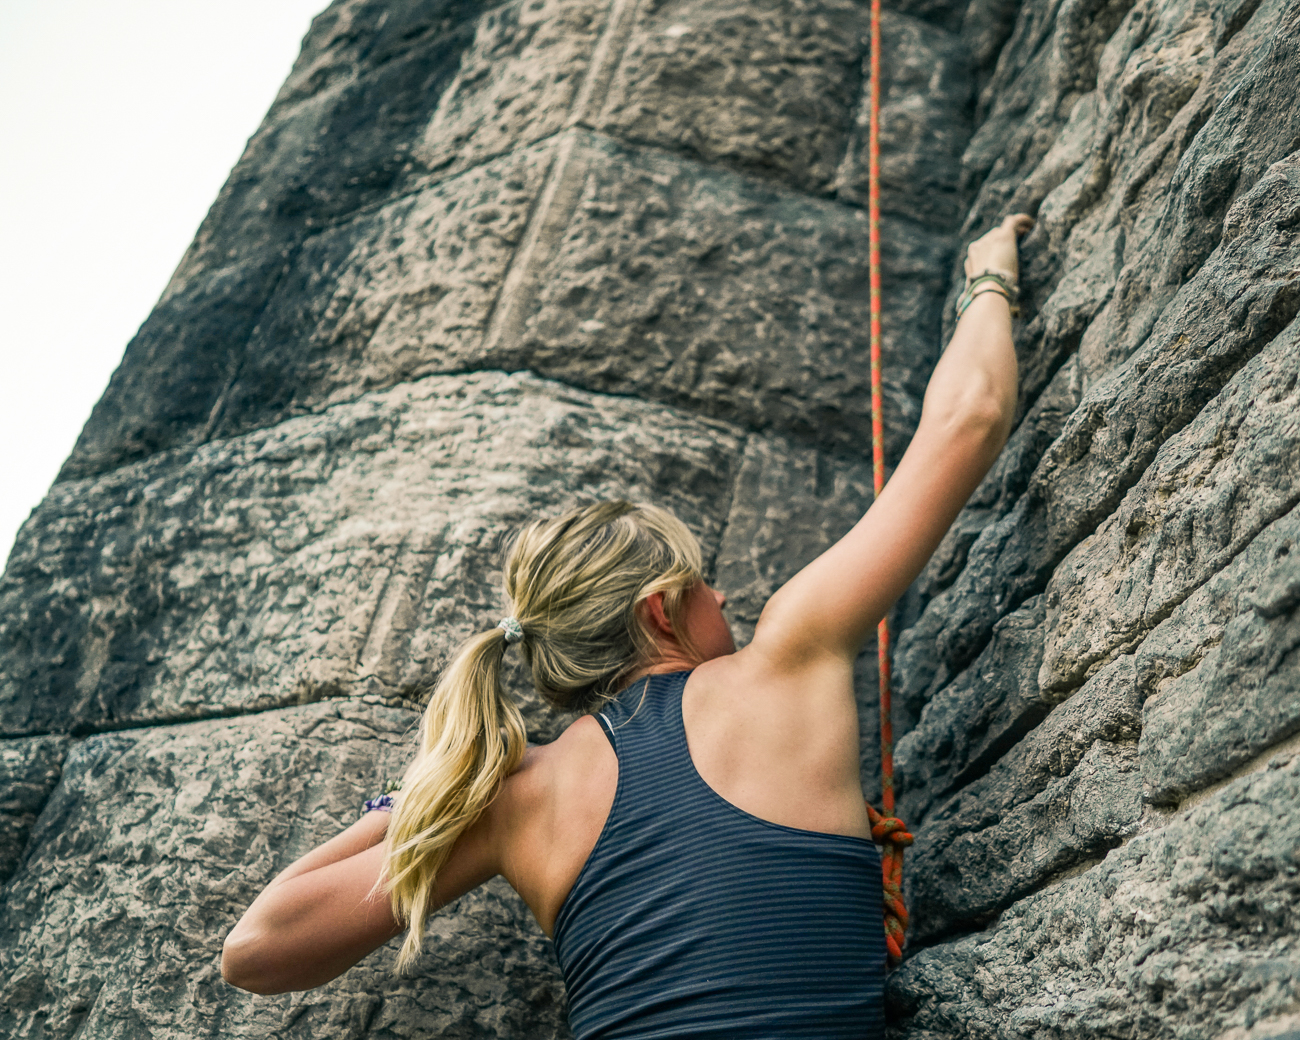 Leah Marshall demonstrates rock climbing in Eden Park. / Image: Allen Meyer // Published: 5.30.18